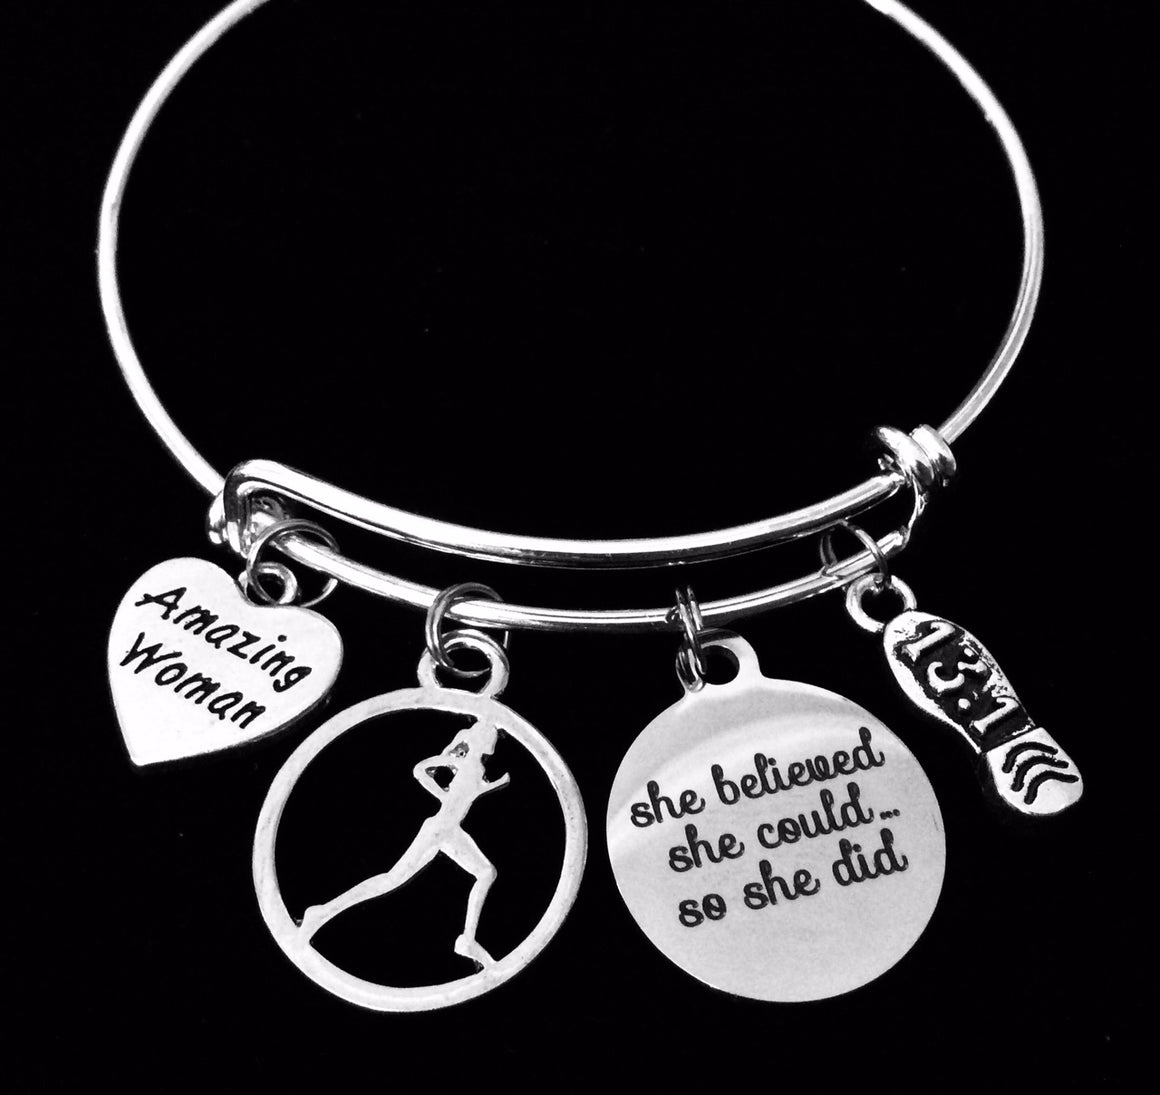 Amazing Woman Expandable Charm Bracelet 13.1 Marathon Race Silver Adjustable Wire Bangle One Size Fits All Gift